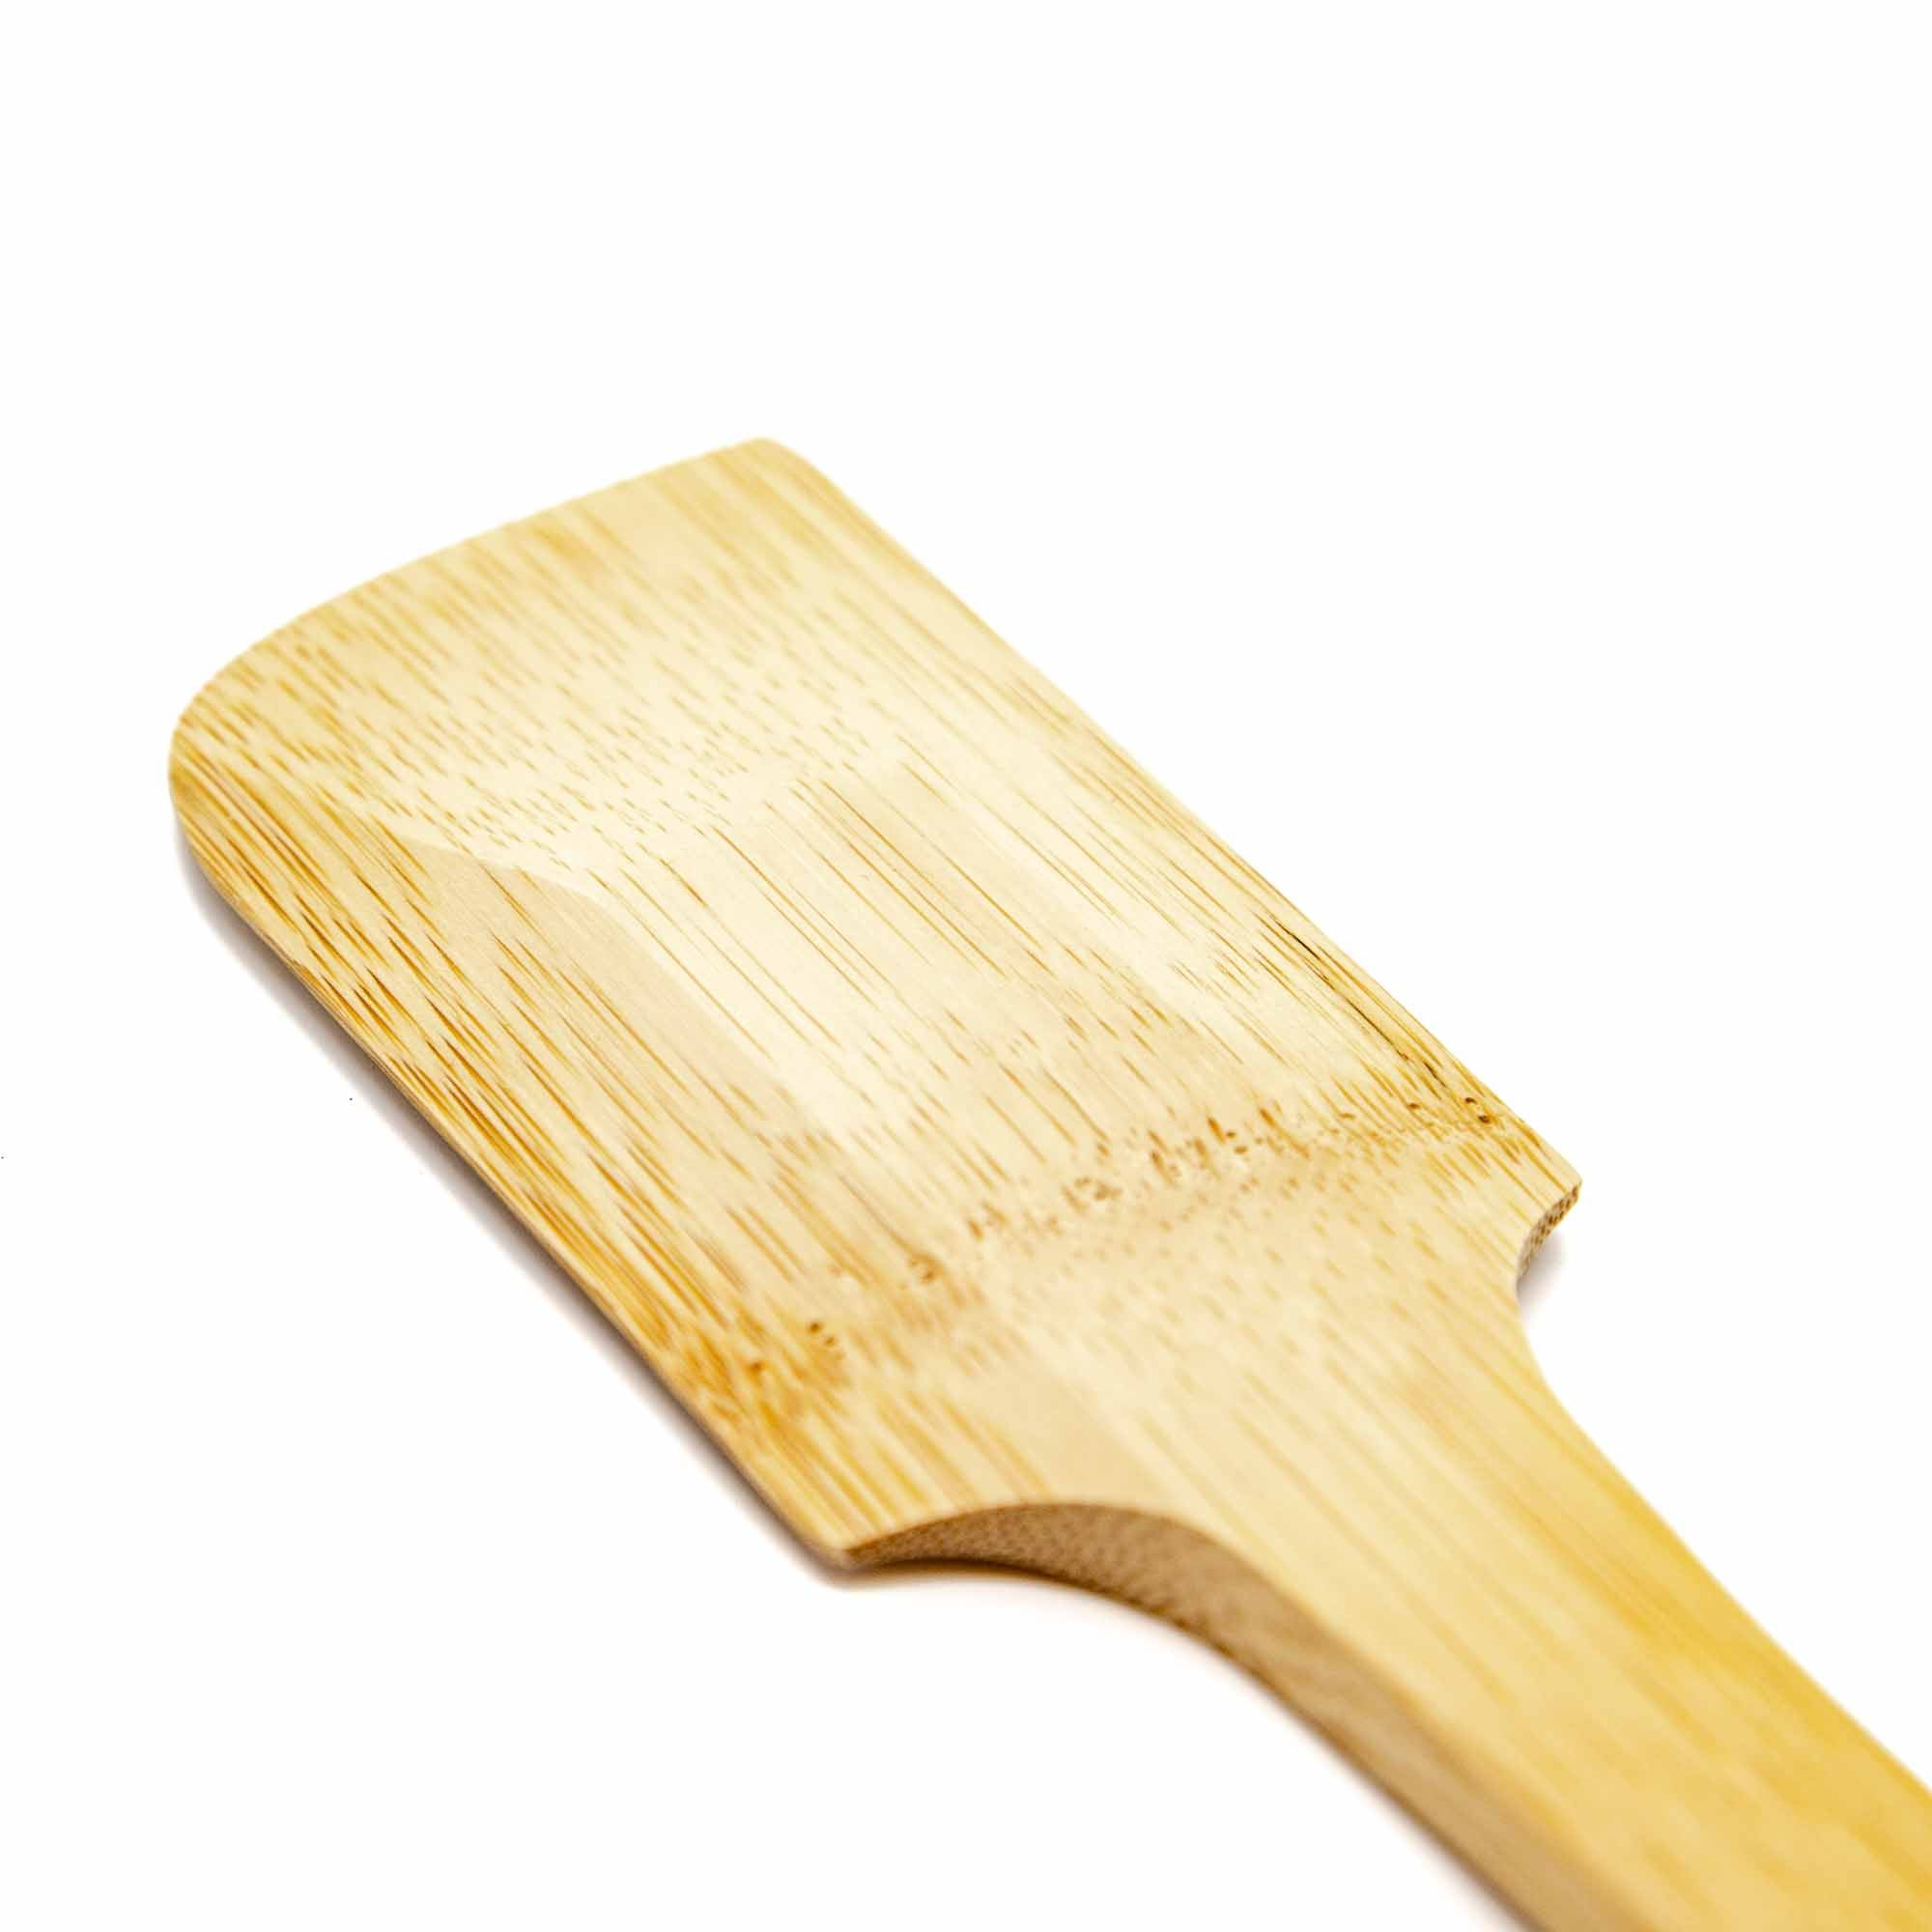 Bambu Scraping Spatula - Mortise And Tenon